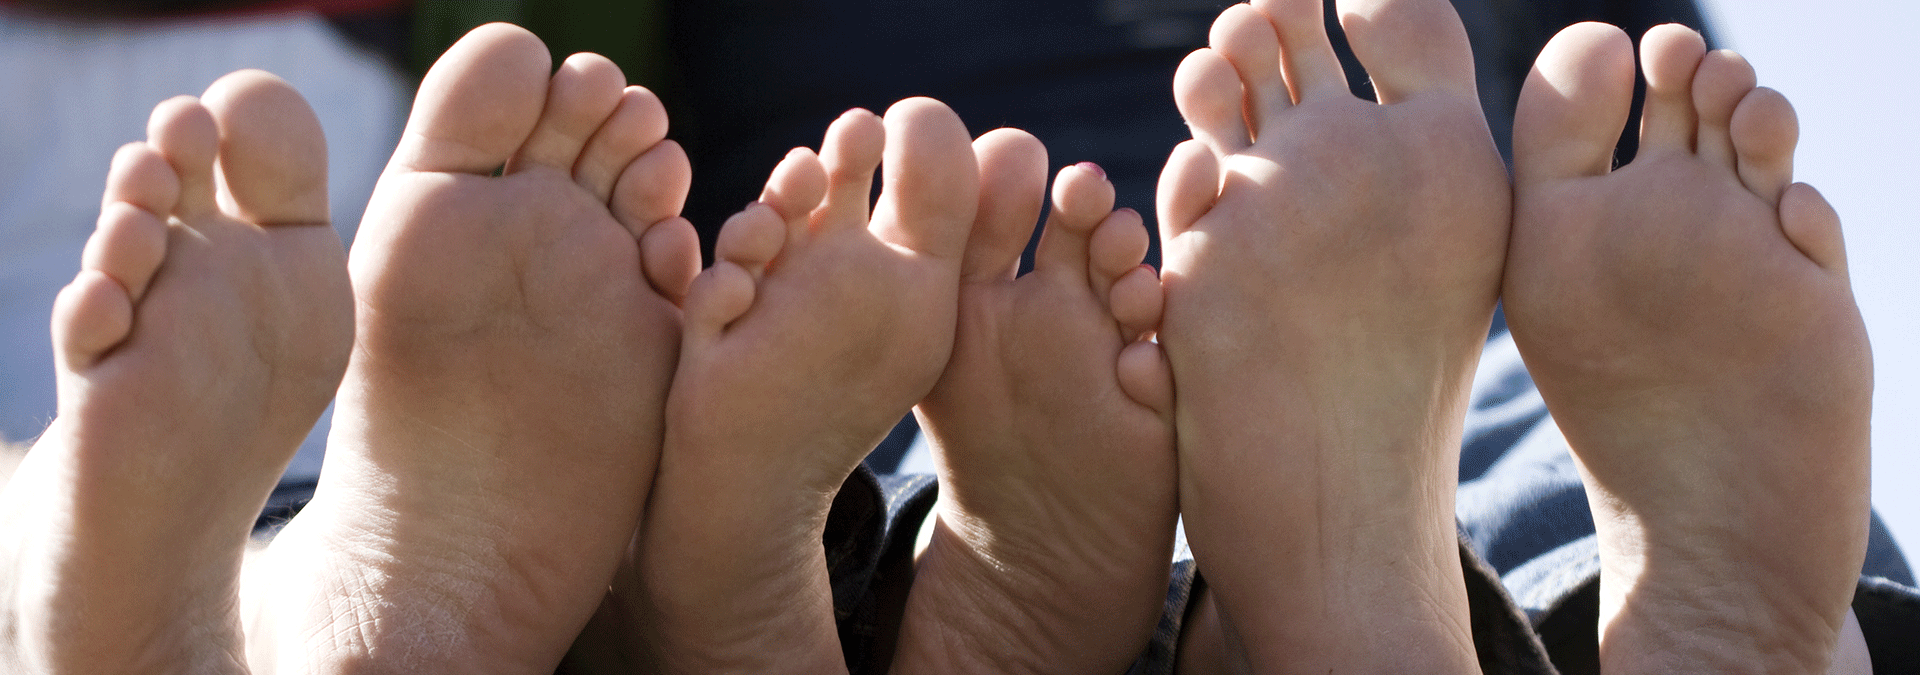 family podiatry foot feet pain ix podiatry North Brisbane Dayboro Woodford Podiatrist